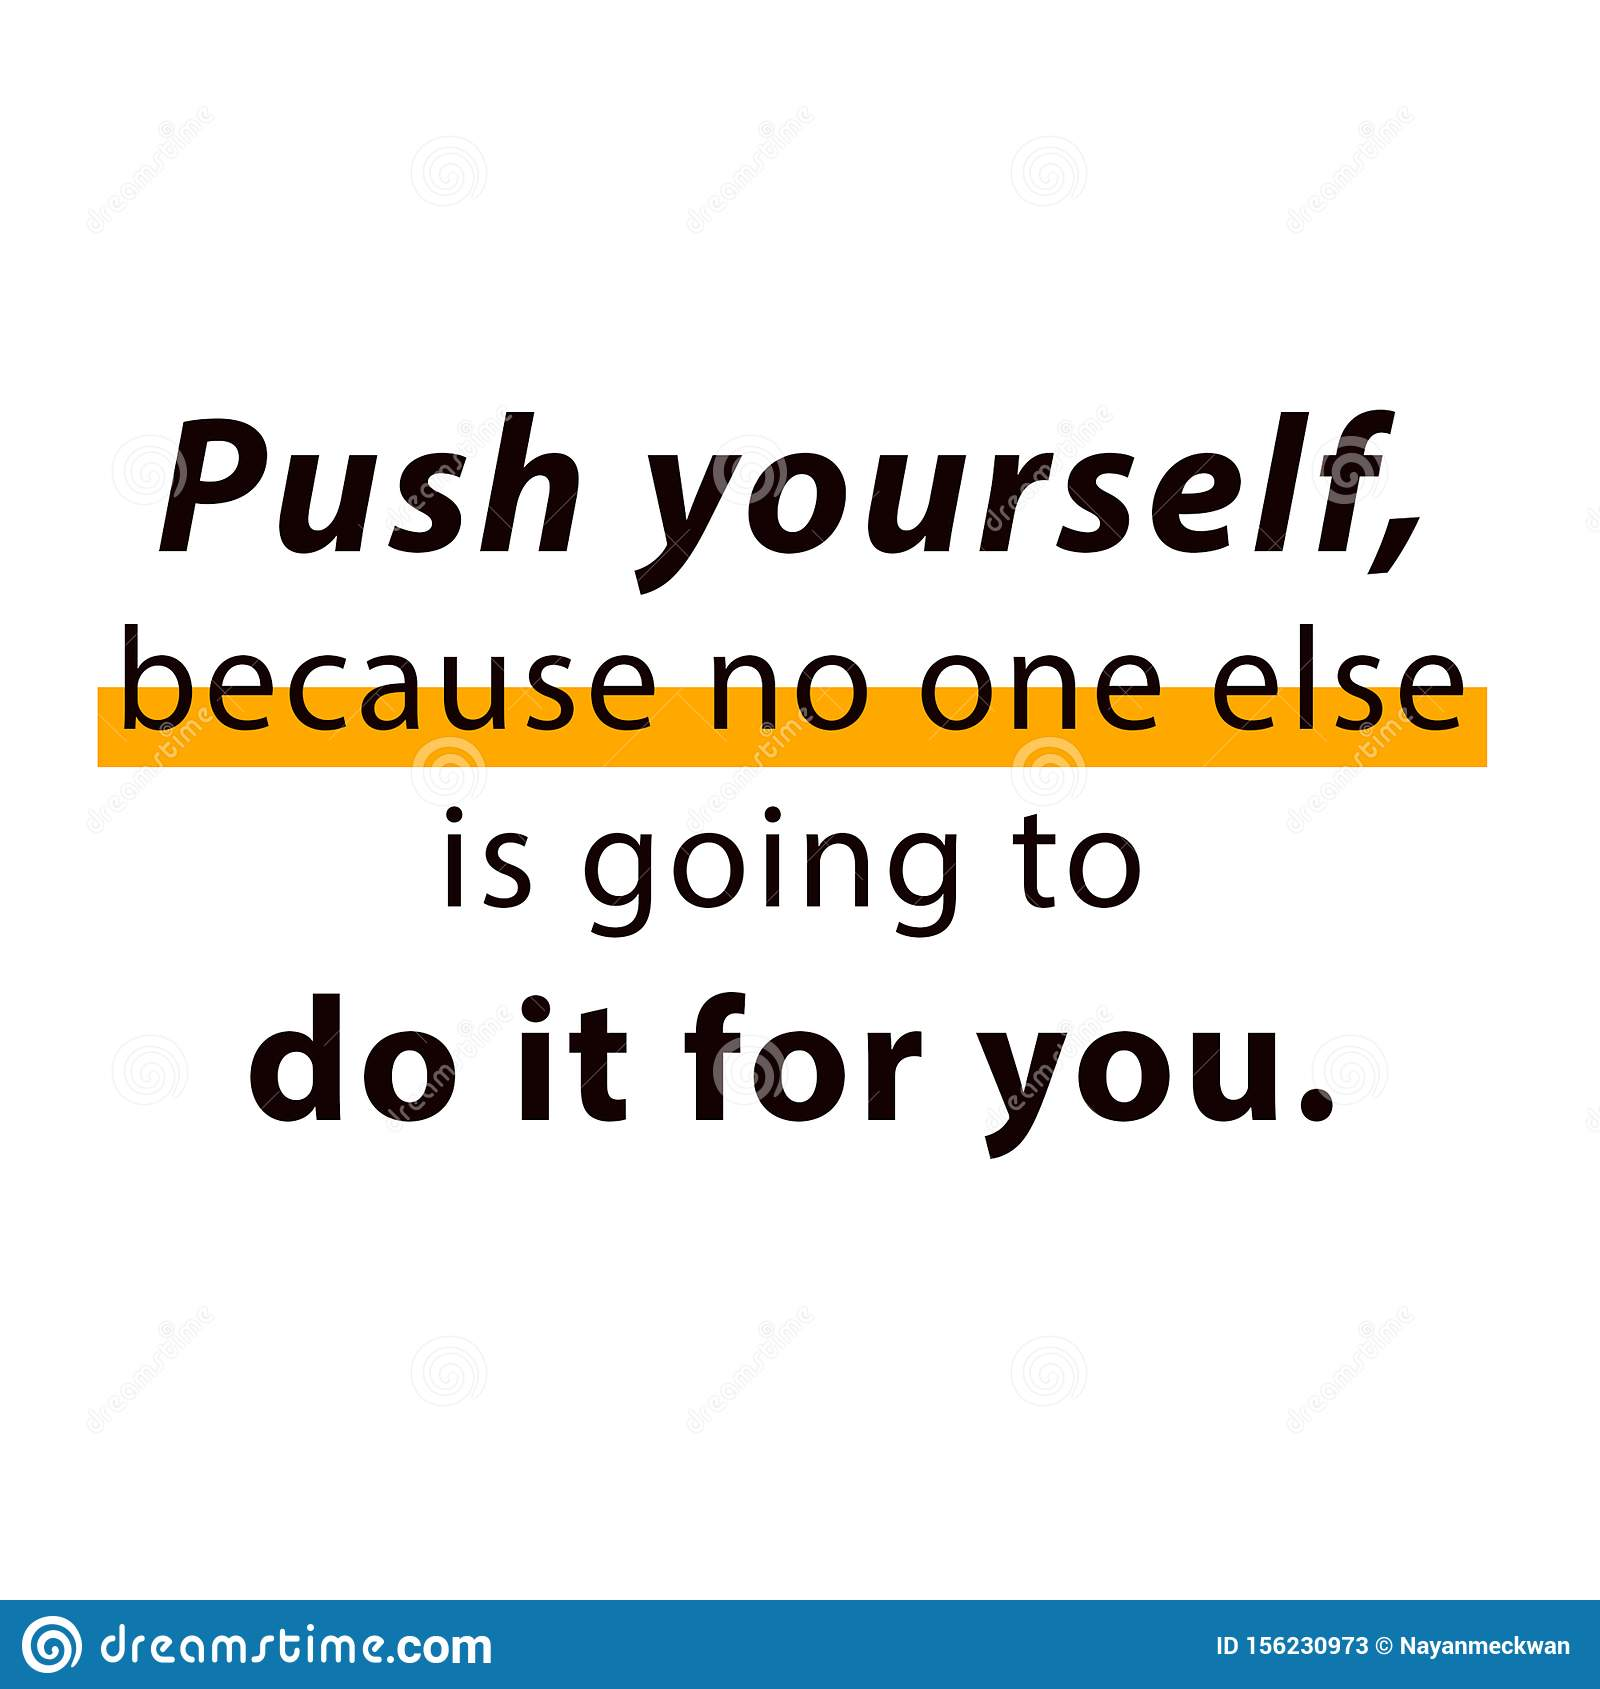 15 Motivational Quotes For Work From Home Mums Caite Elizabeth